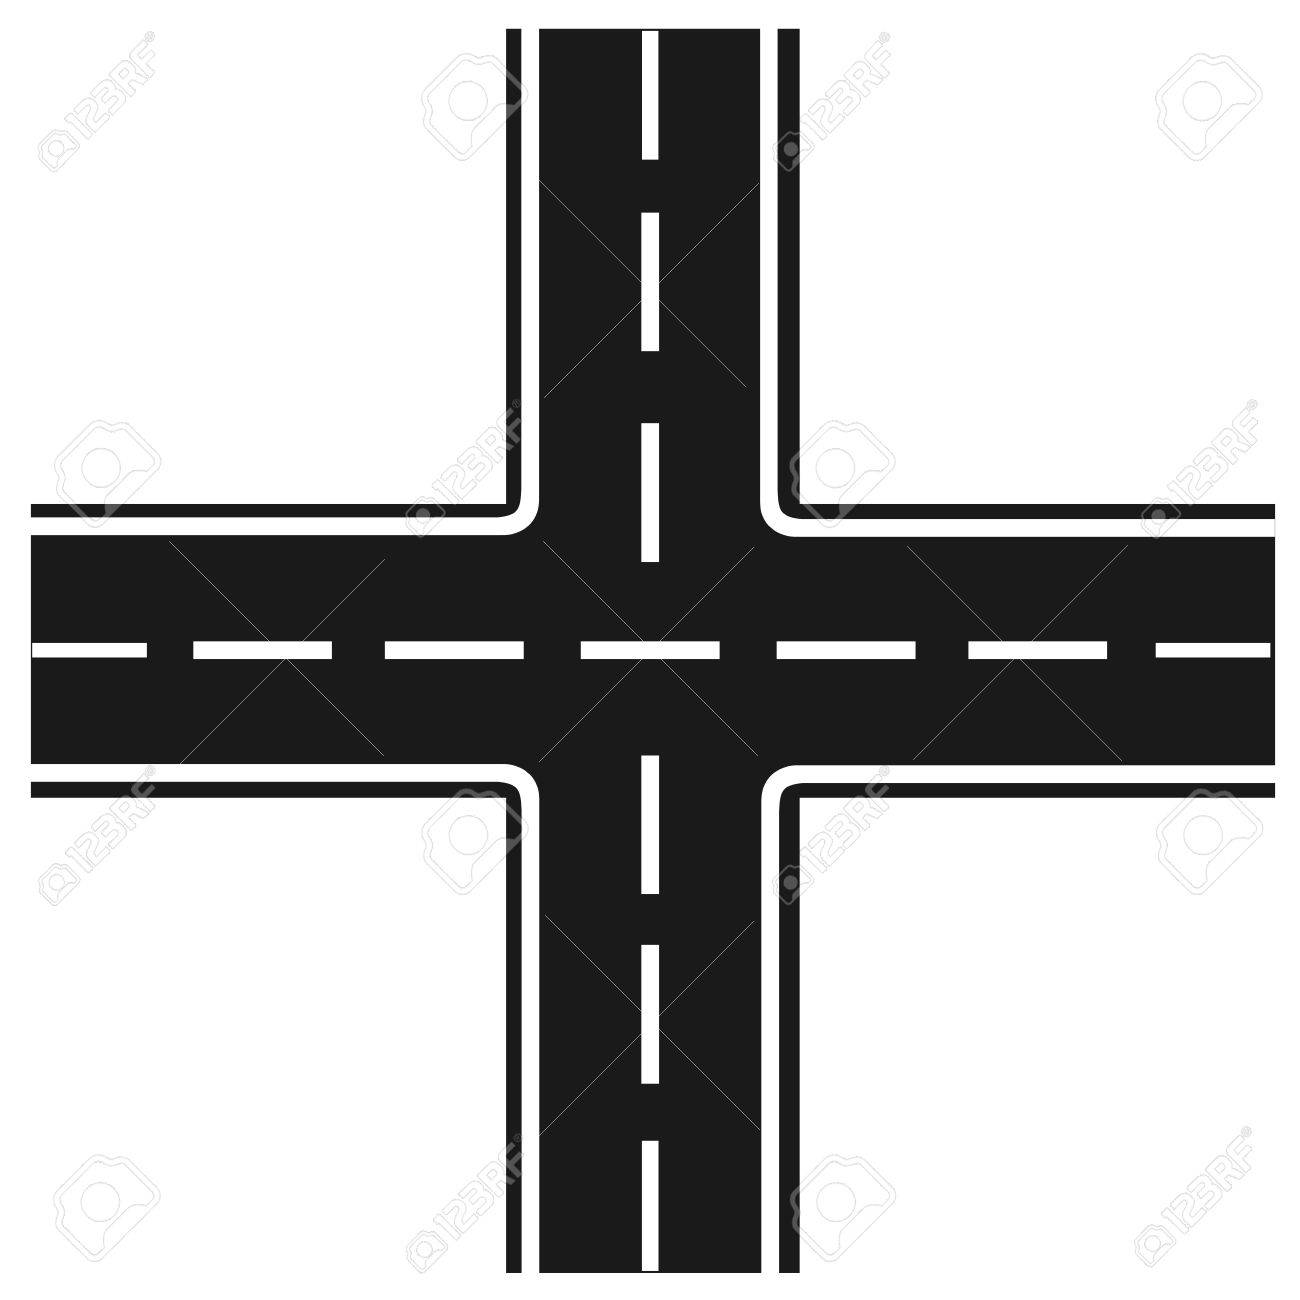 Road clipart intersection.